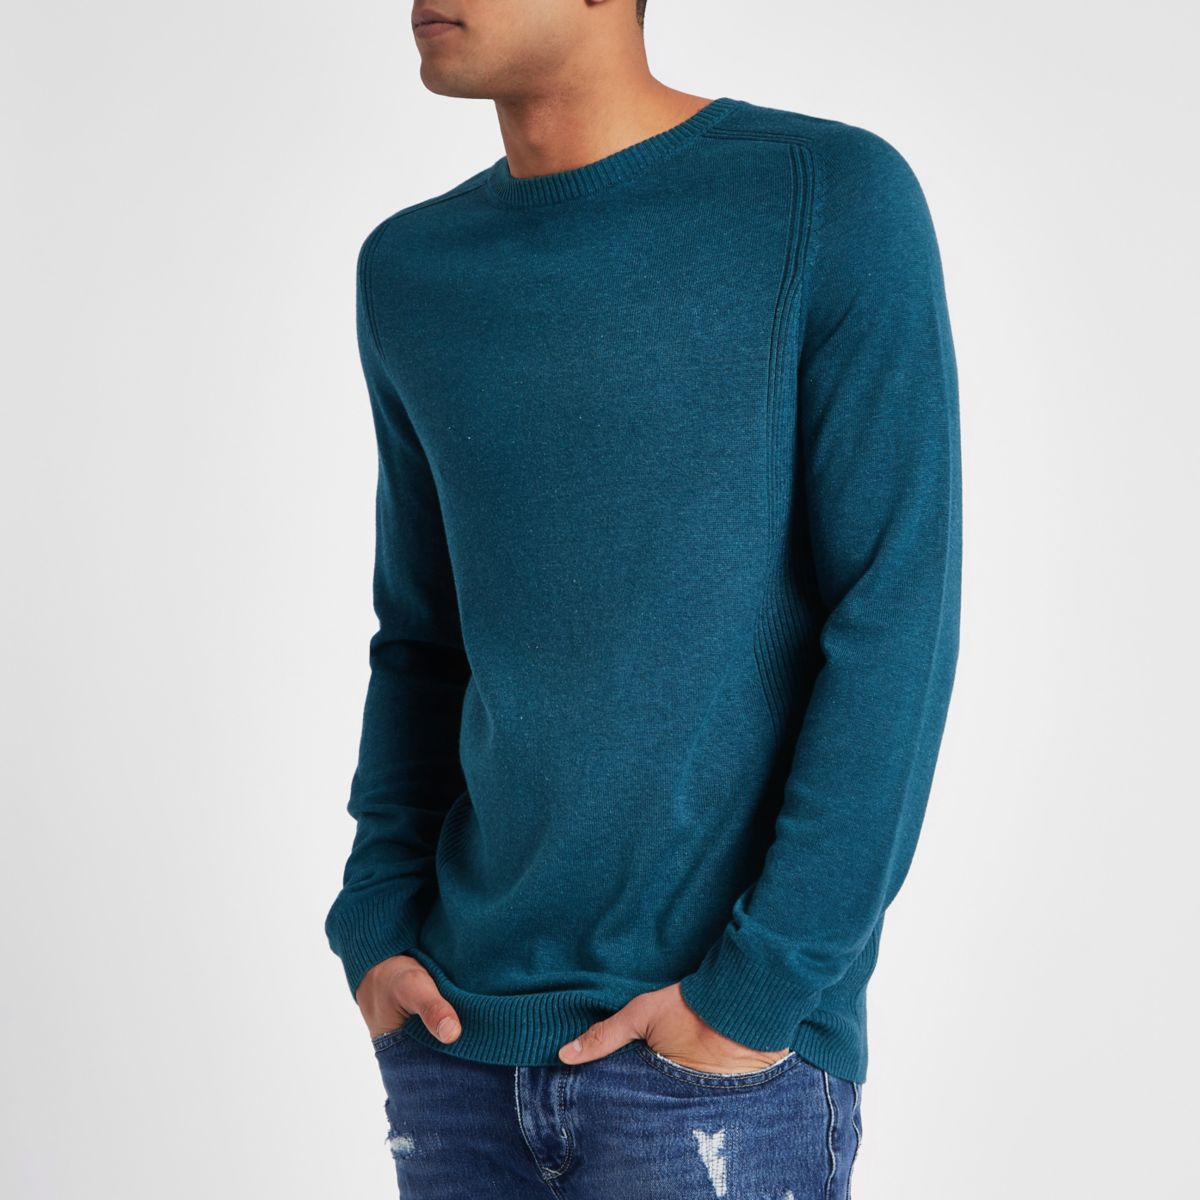 Men's Jumpers & Cardigans Whether you are a classic crew neck or roll neck kind of guy, we've got a huge selection of men's jumpers & cardigans to pick from. .